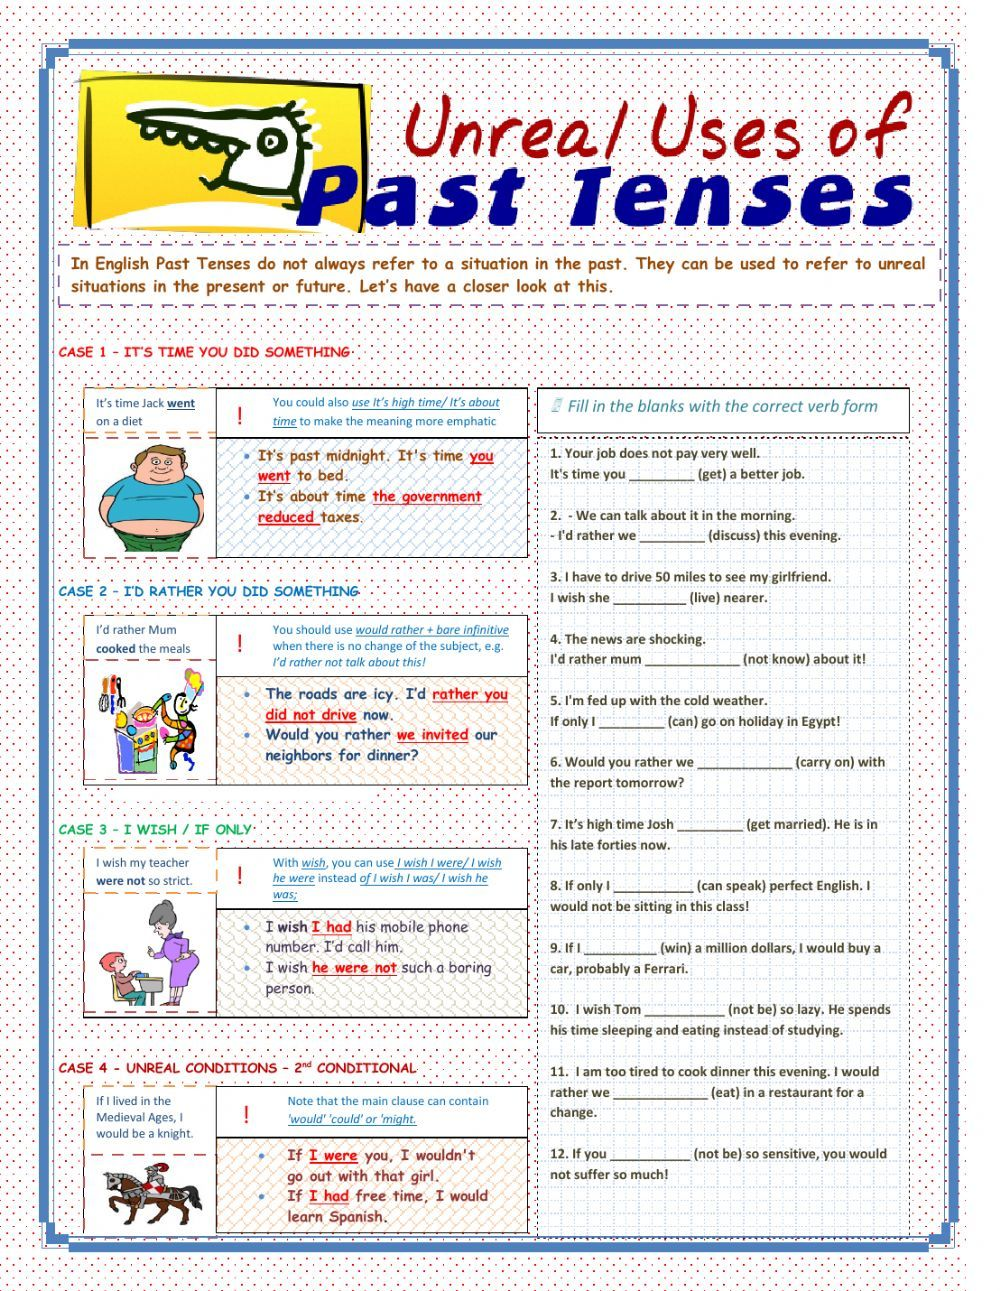 Past tenses interactive and downloadable worksheet. You